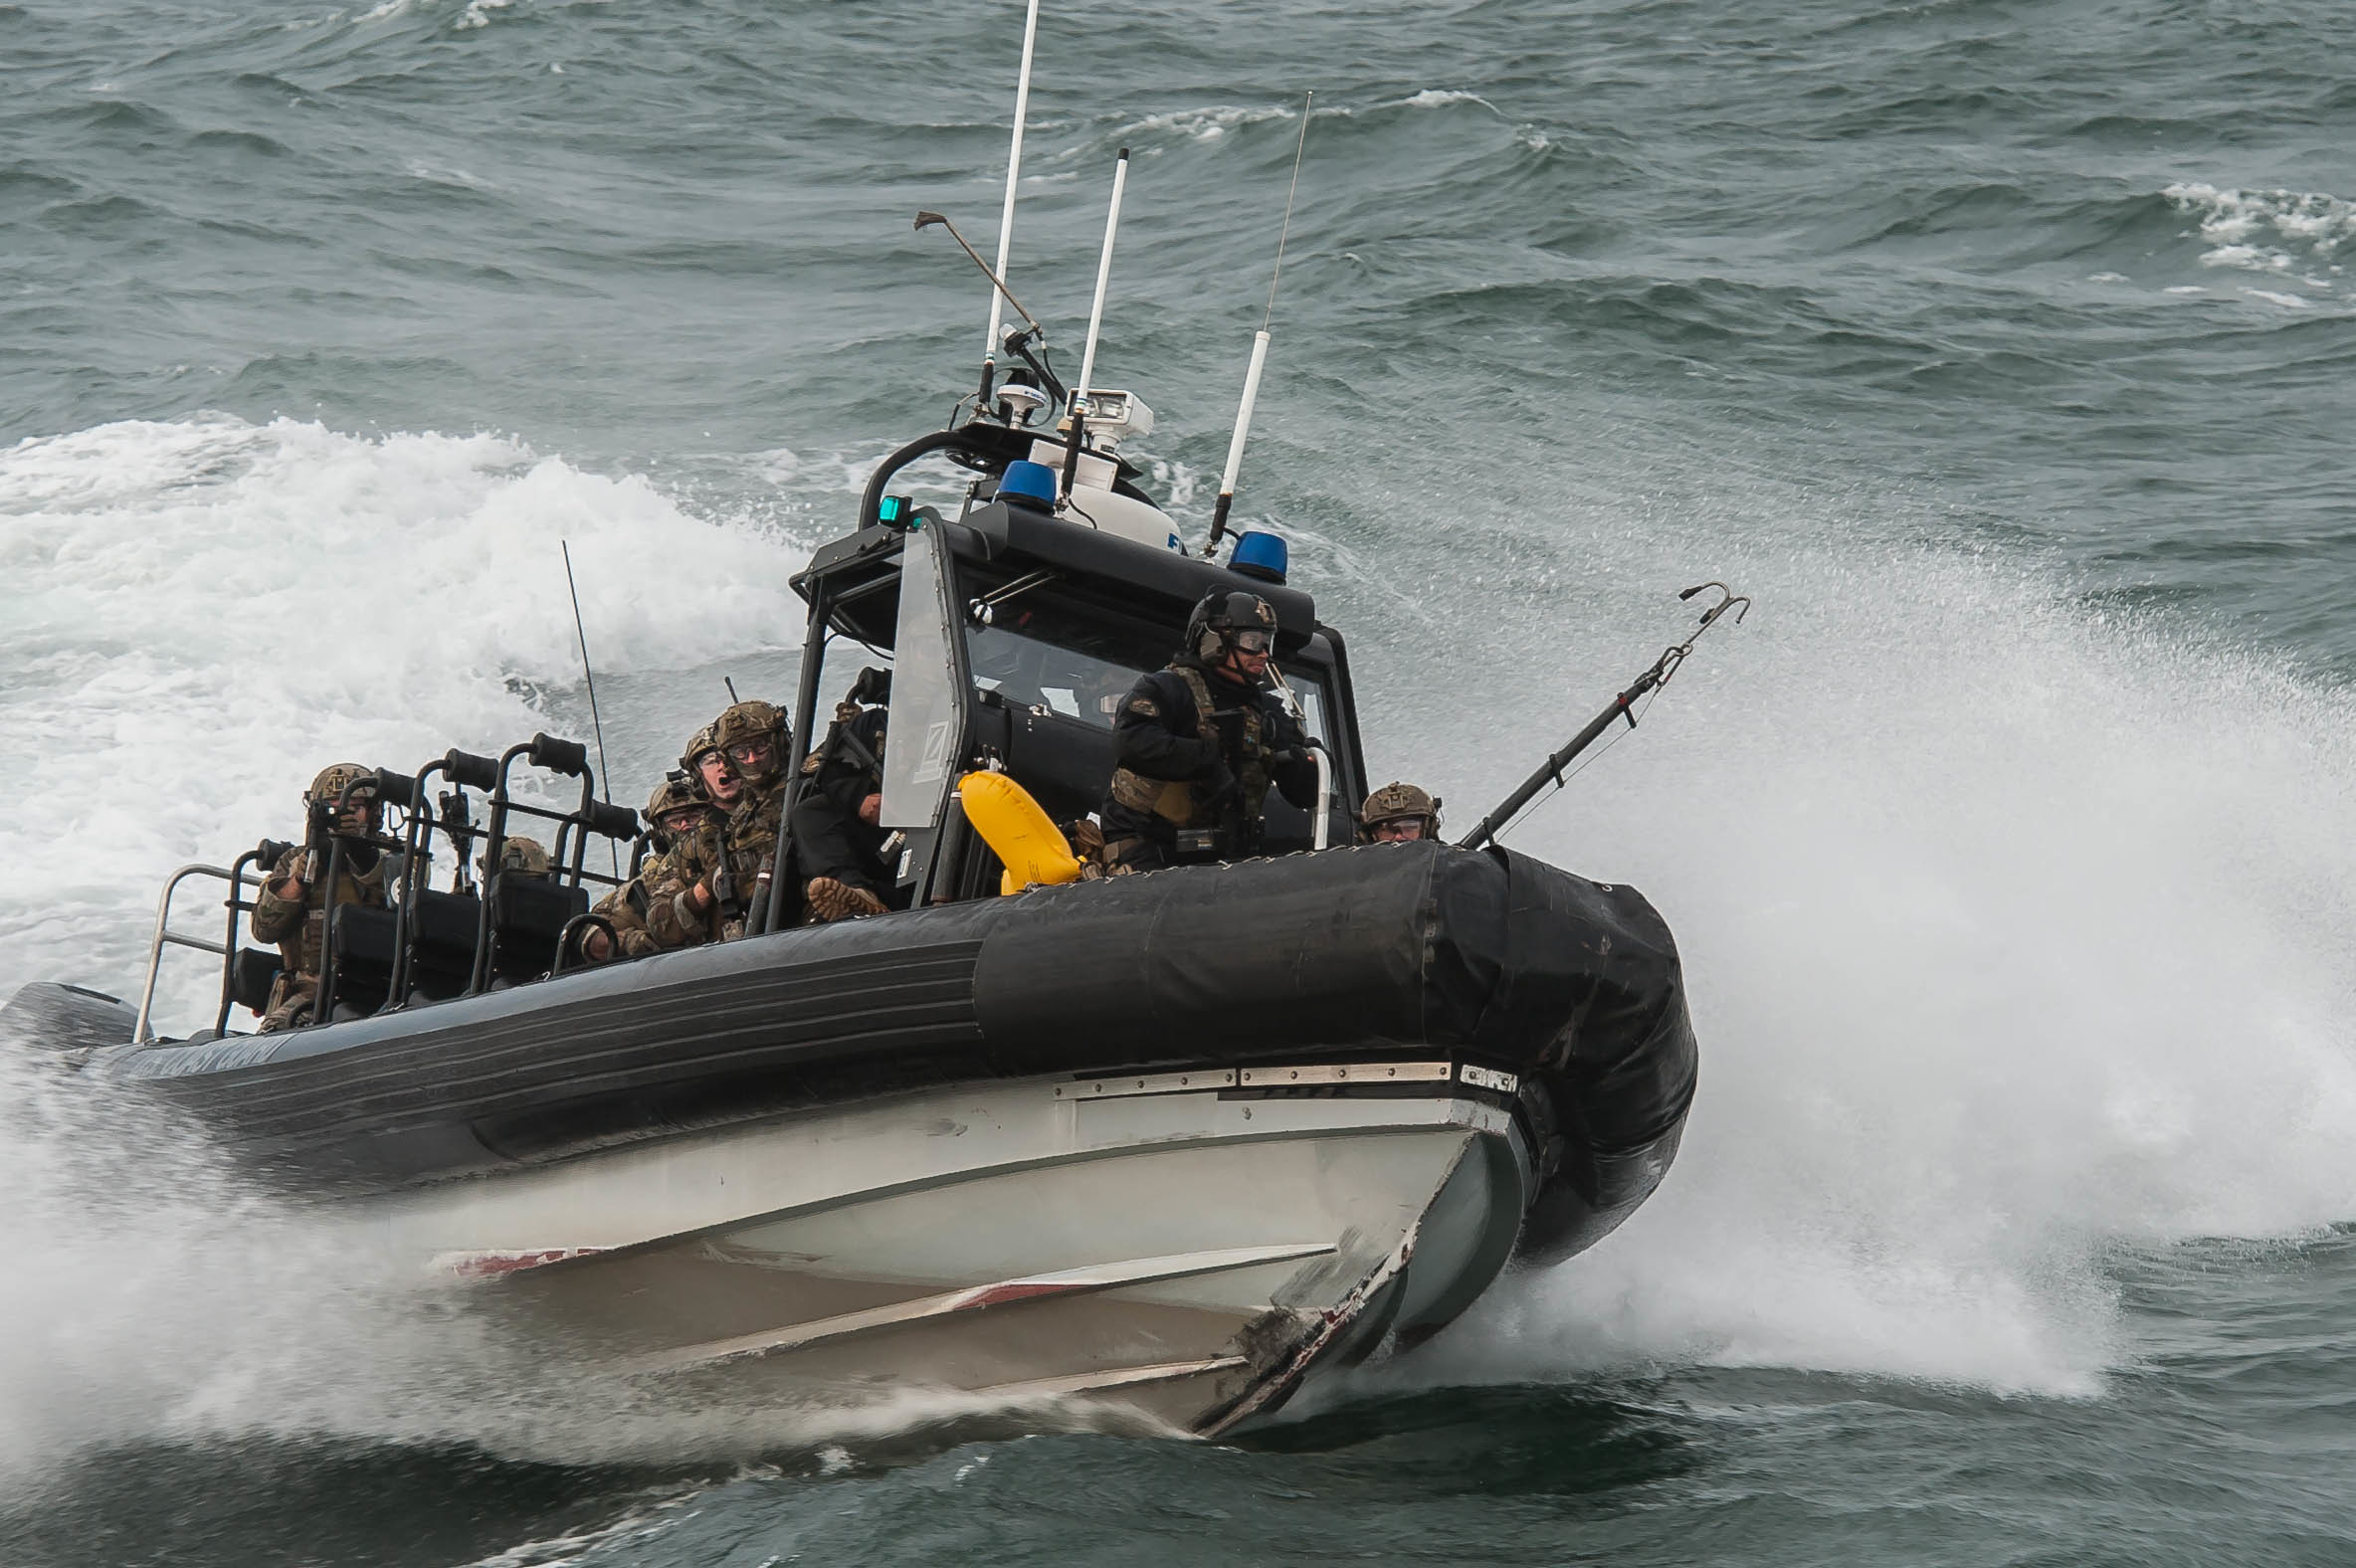 The Coast Guard's Maritime Security Response Team (MSRT) from Virginia participates in a training evolution in Hyannis, Mass., Thursday, Oct., 22, 2015. The highly trained and specialized team, using a real-world underway ferry, practiced tactical boardings-at-sea, active shooter scenarios, and detection of radiological material. (U.S. Coast Guard photo by Petty Officer 3rd Class Ross Ruddell)